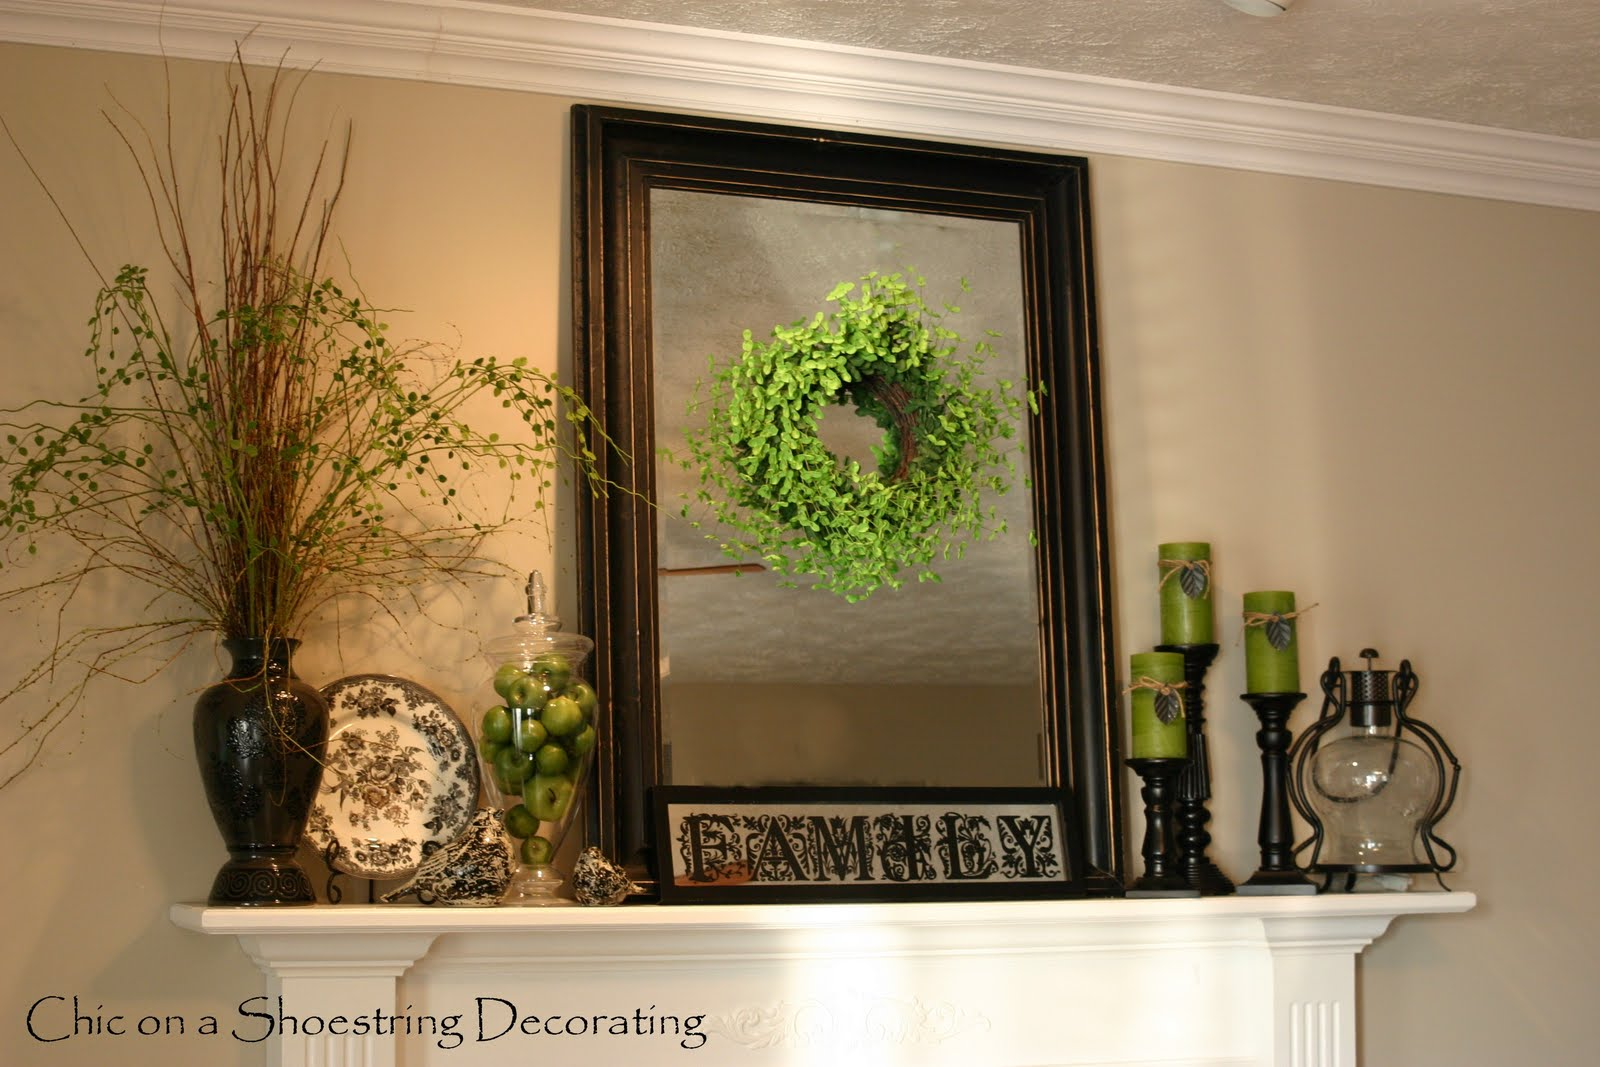 Chic On A Shoestring Decorating Adding Pops Of Spring